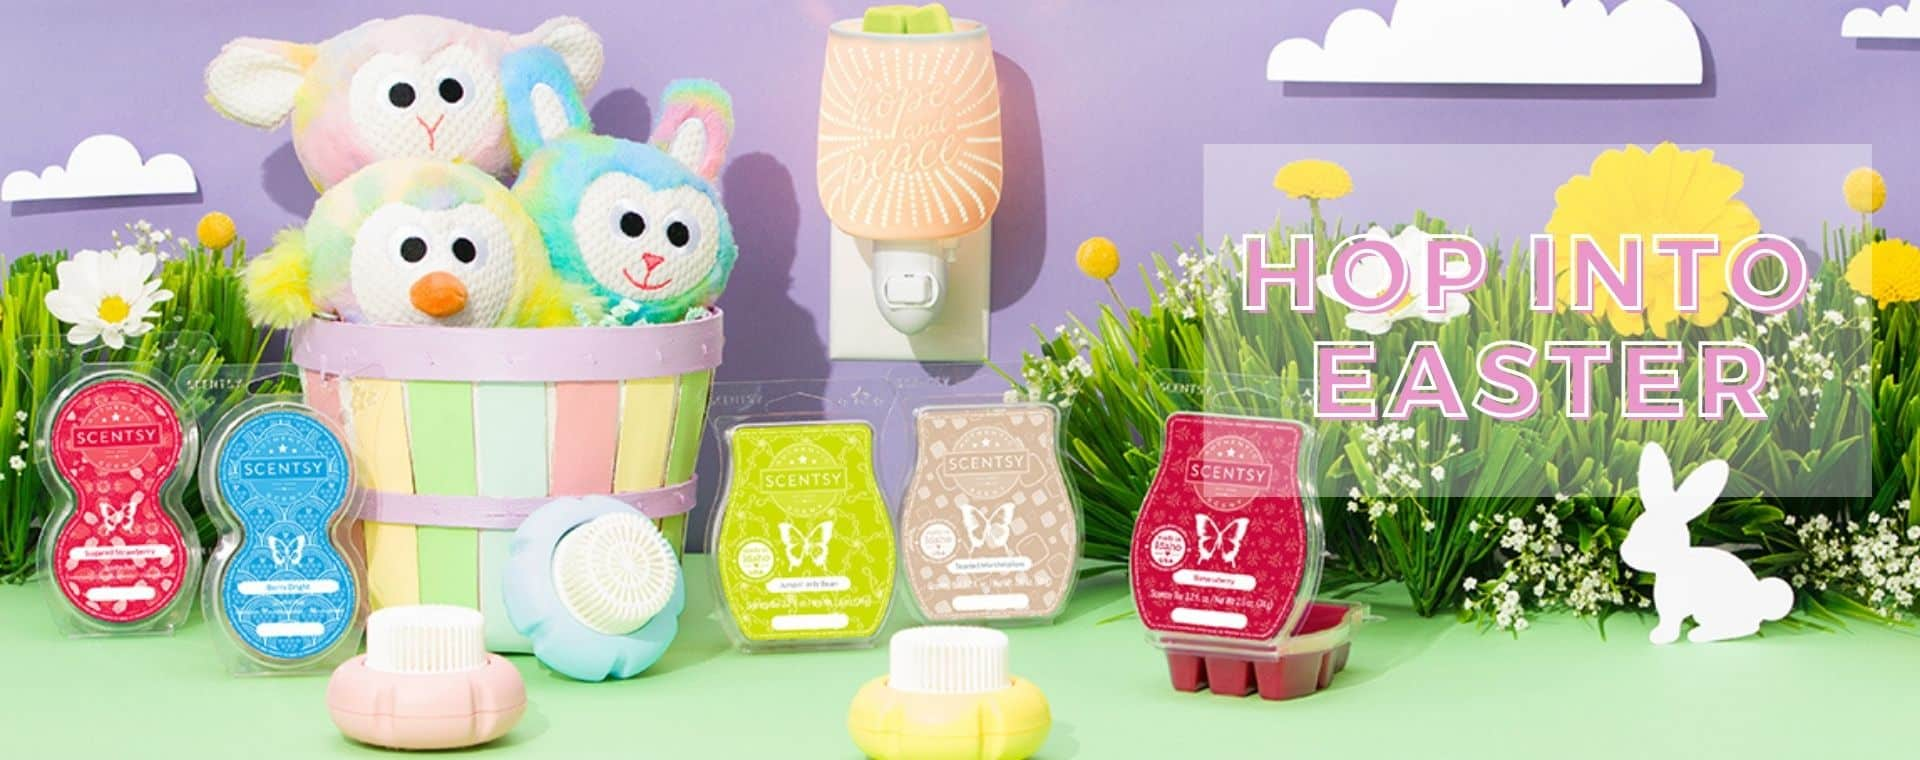 hop into easter Scentsy 2021